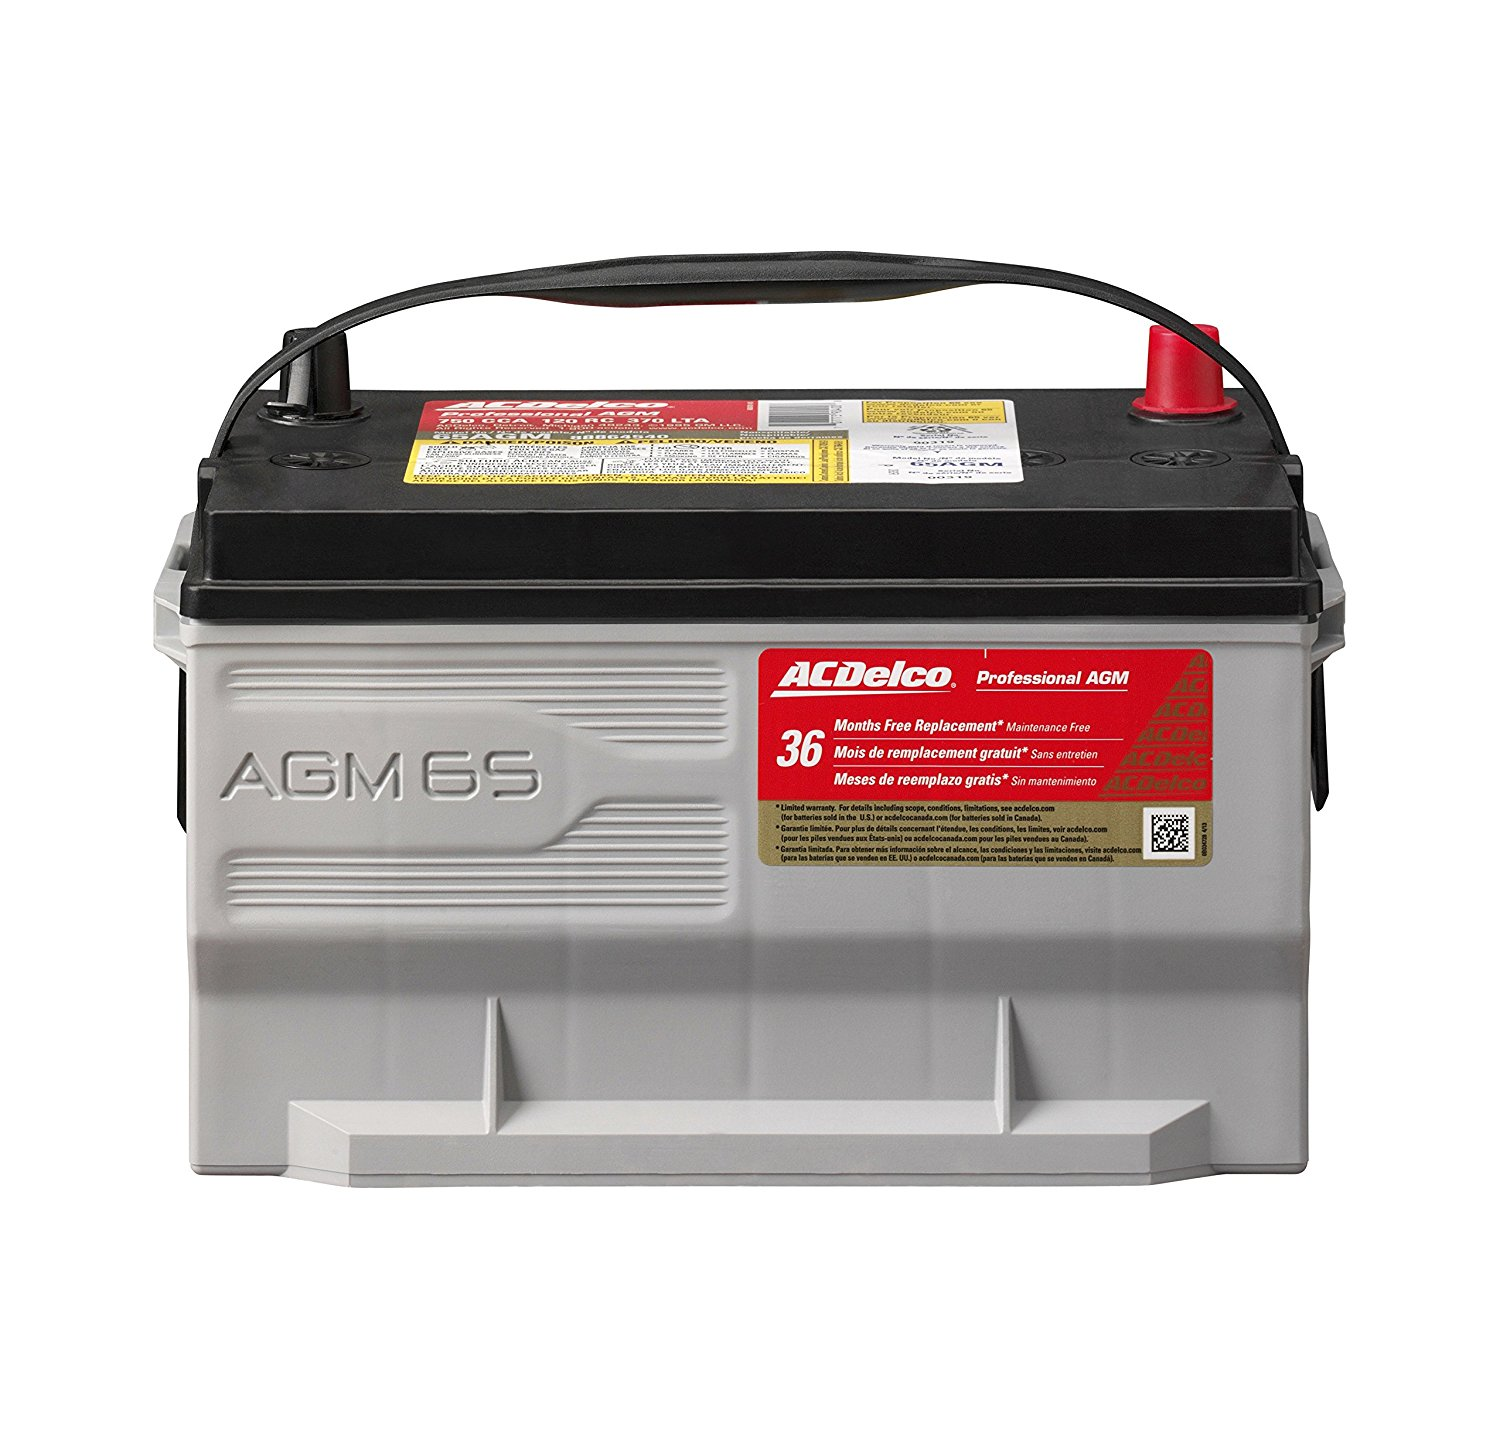 What's The Best Car Battery? Well, That Depends.